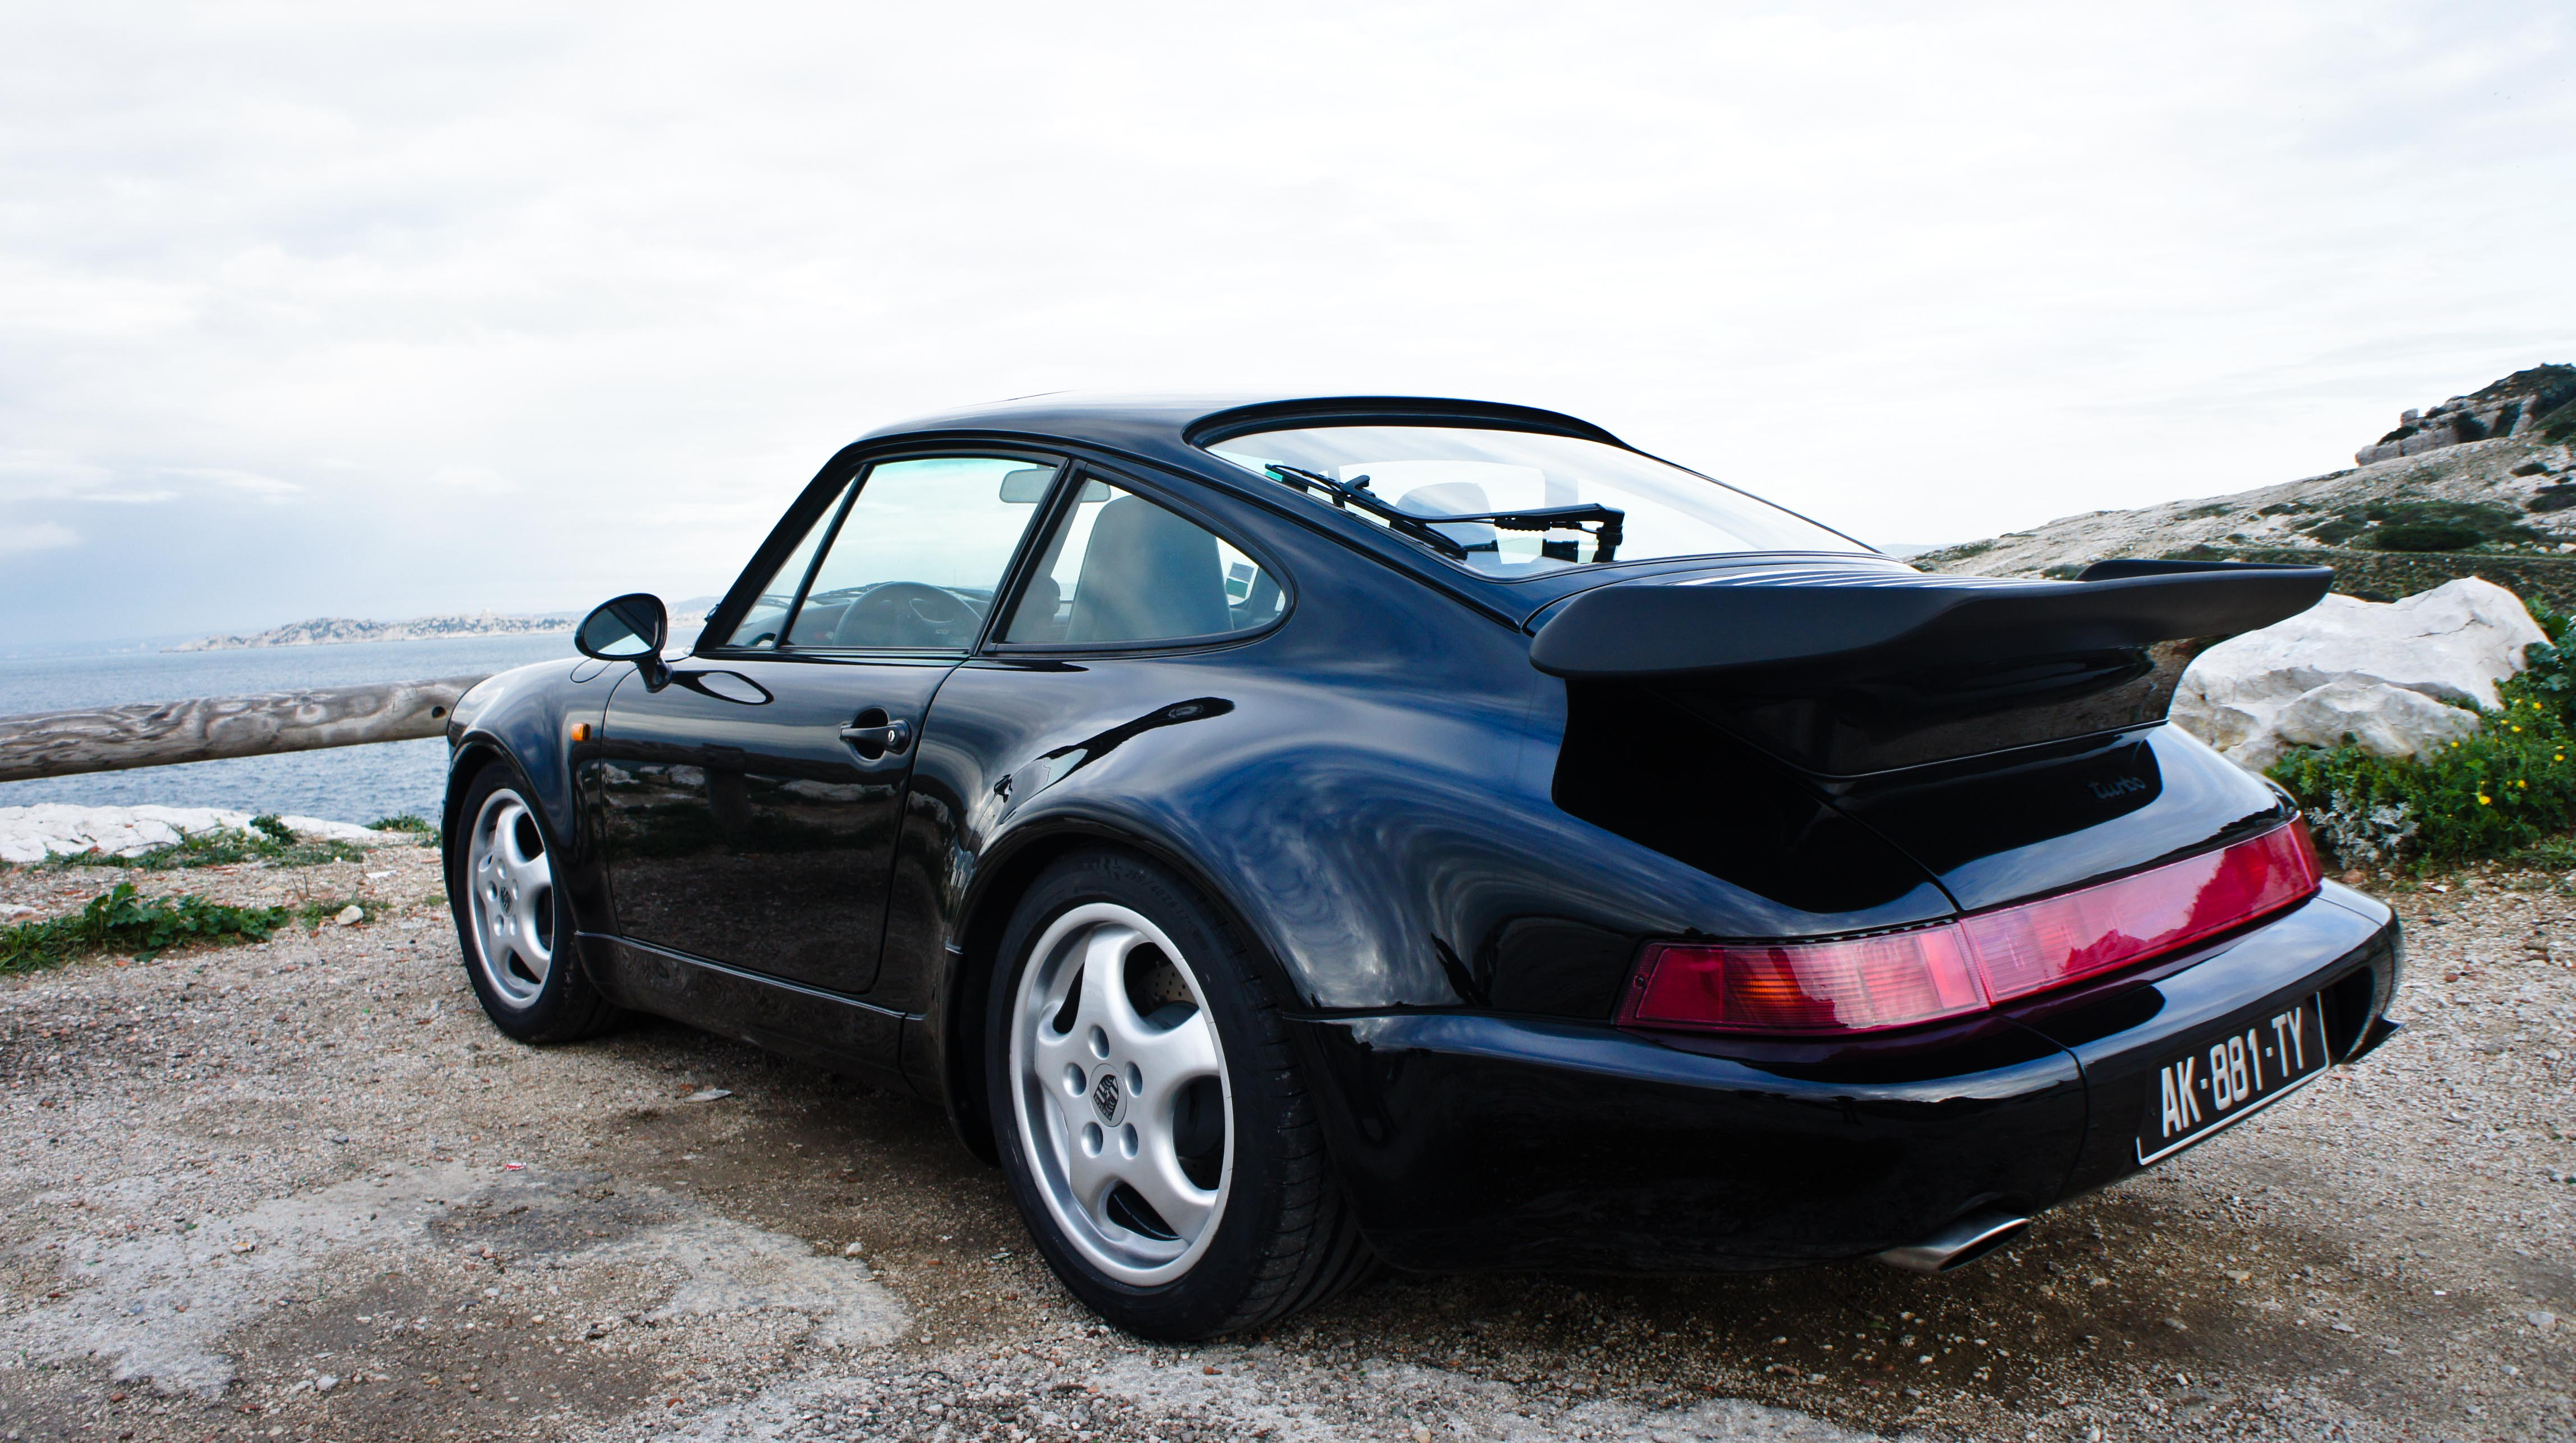 vid o la minute du propri taire porsche 911 turbo la superlative. Black Bedroom Furniture Sets. Home Design Ideas